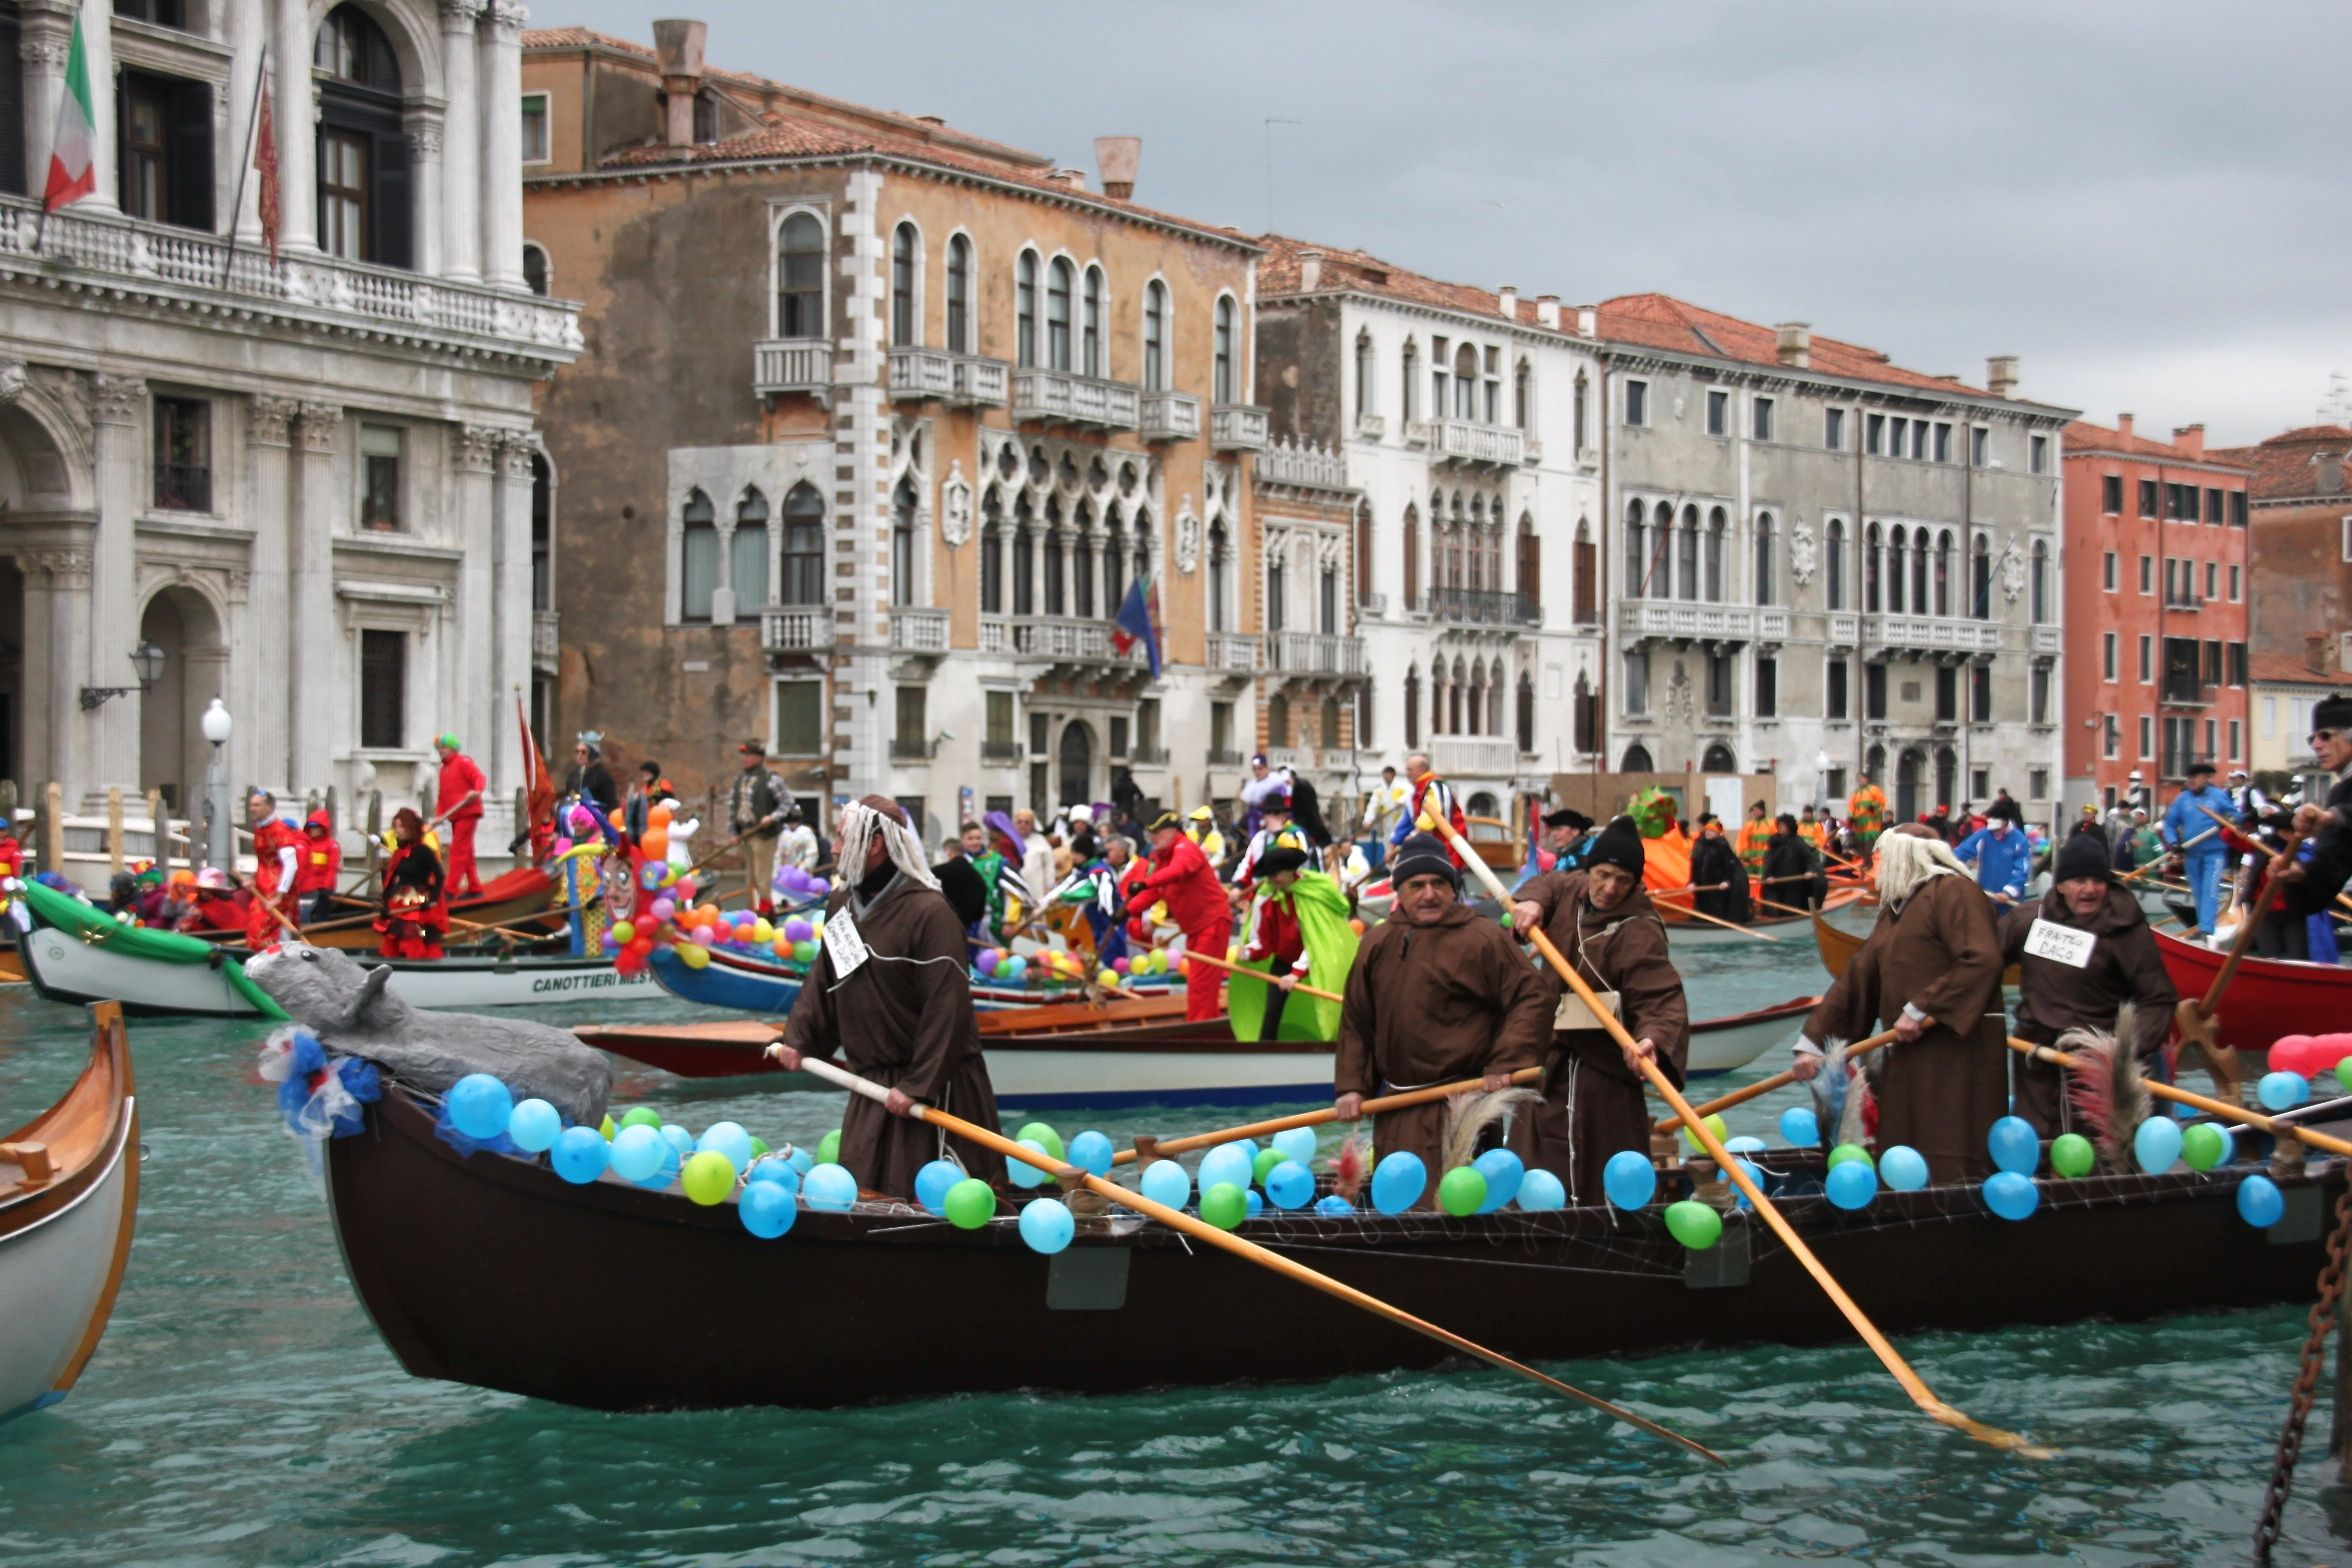 Venice Carnival Water Parade - a crew of men dressed as monks rows down the Grand Canal